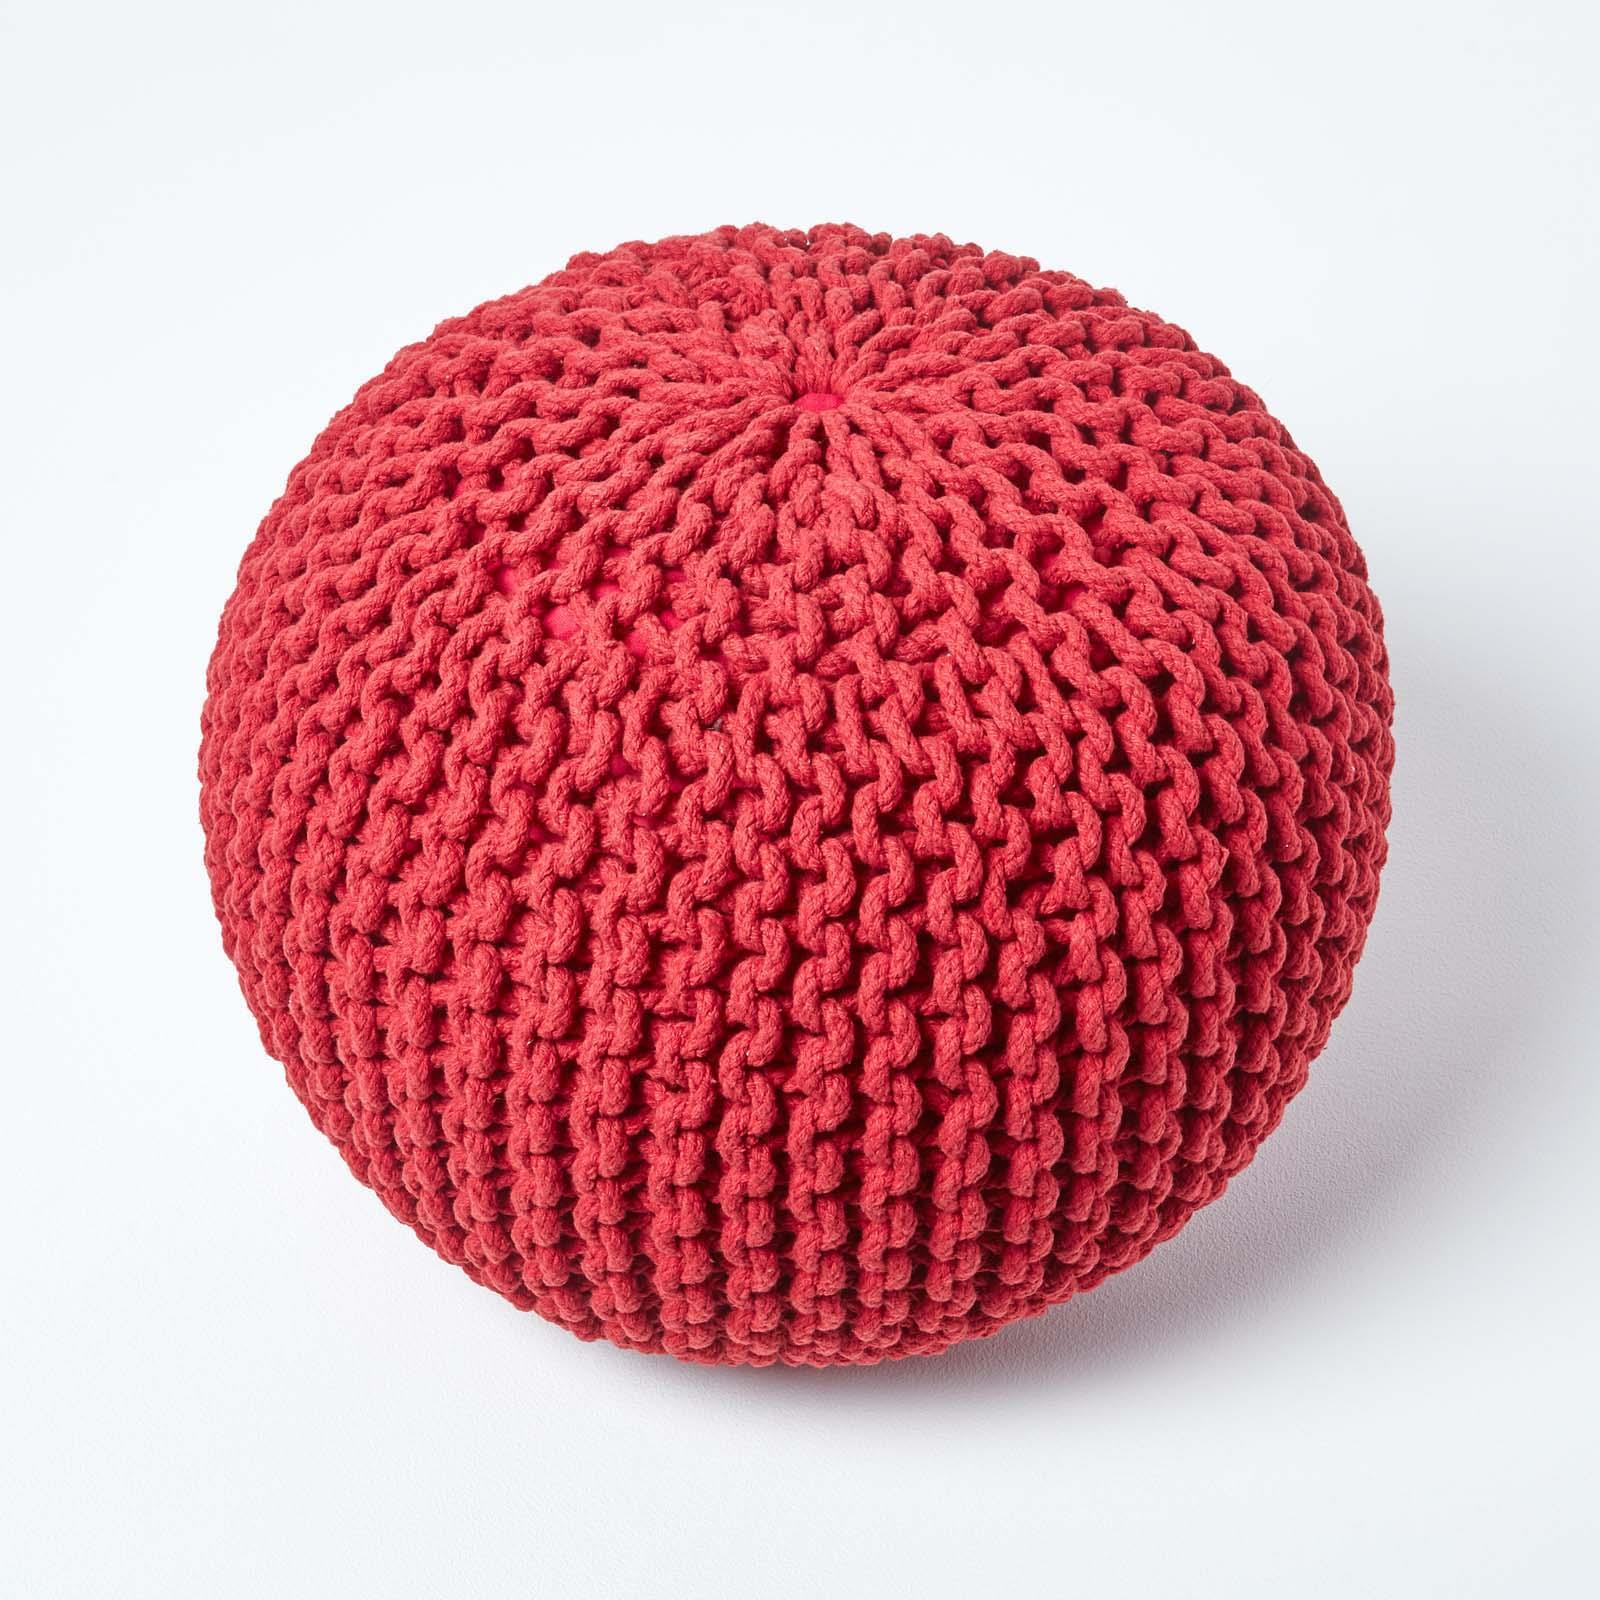 Hand-Knitted-100-Cotton-Pouffes-Round-Sphere-Or-Cube-Square-Chunky-Footstools thumbnail 172